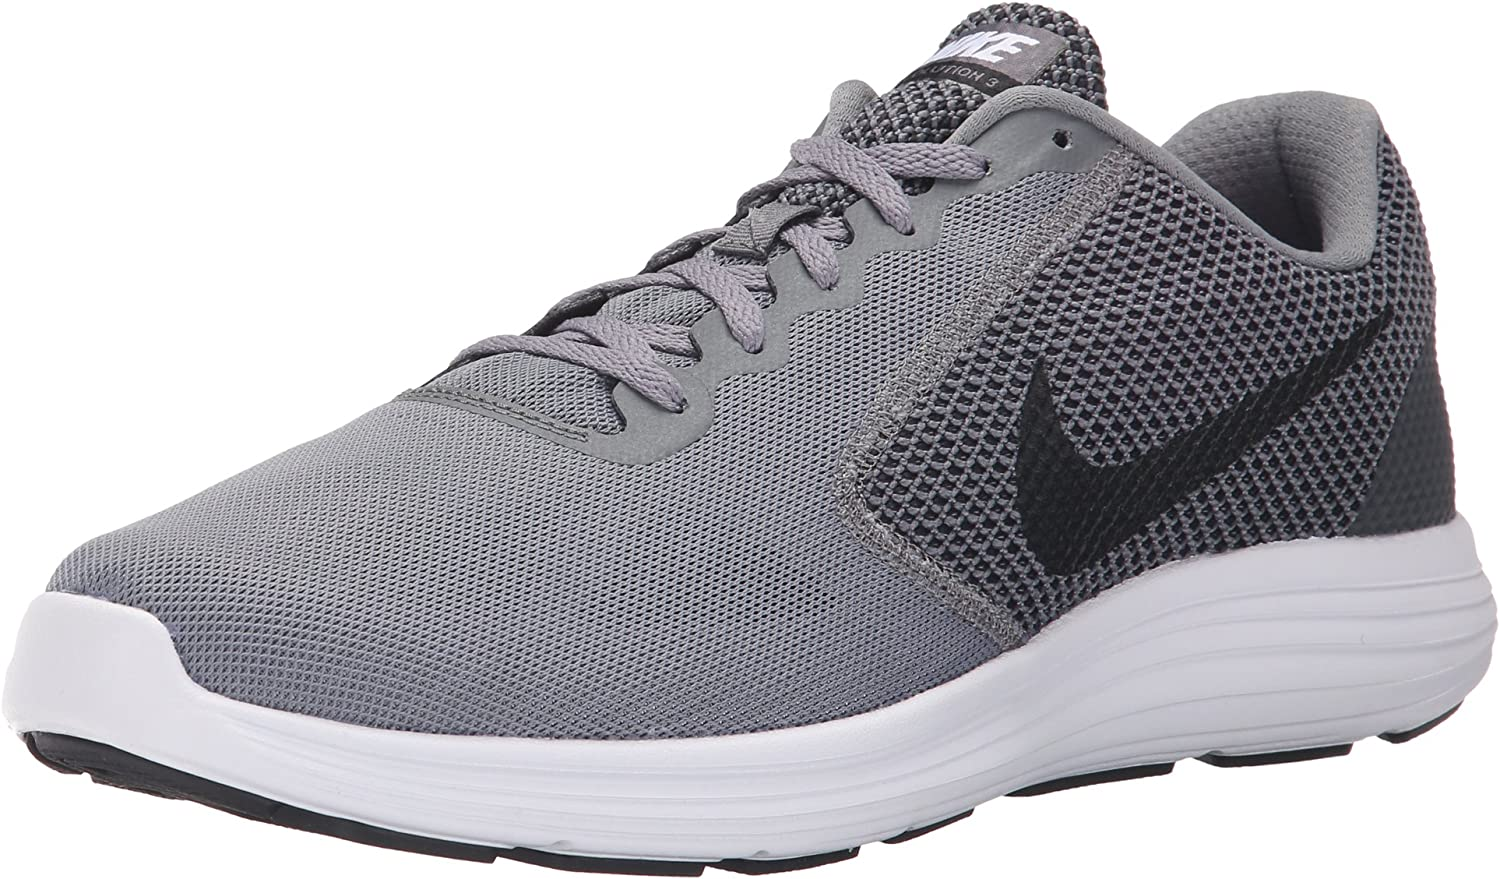 Nike Men's Revolution Shoe Running NEW before selling ! Super beauty product restock quality top! 3